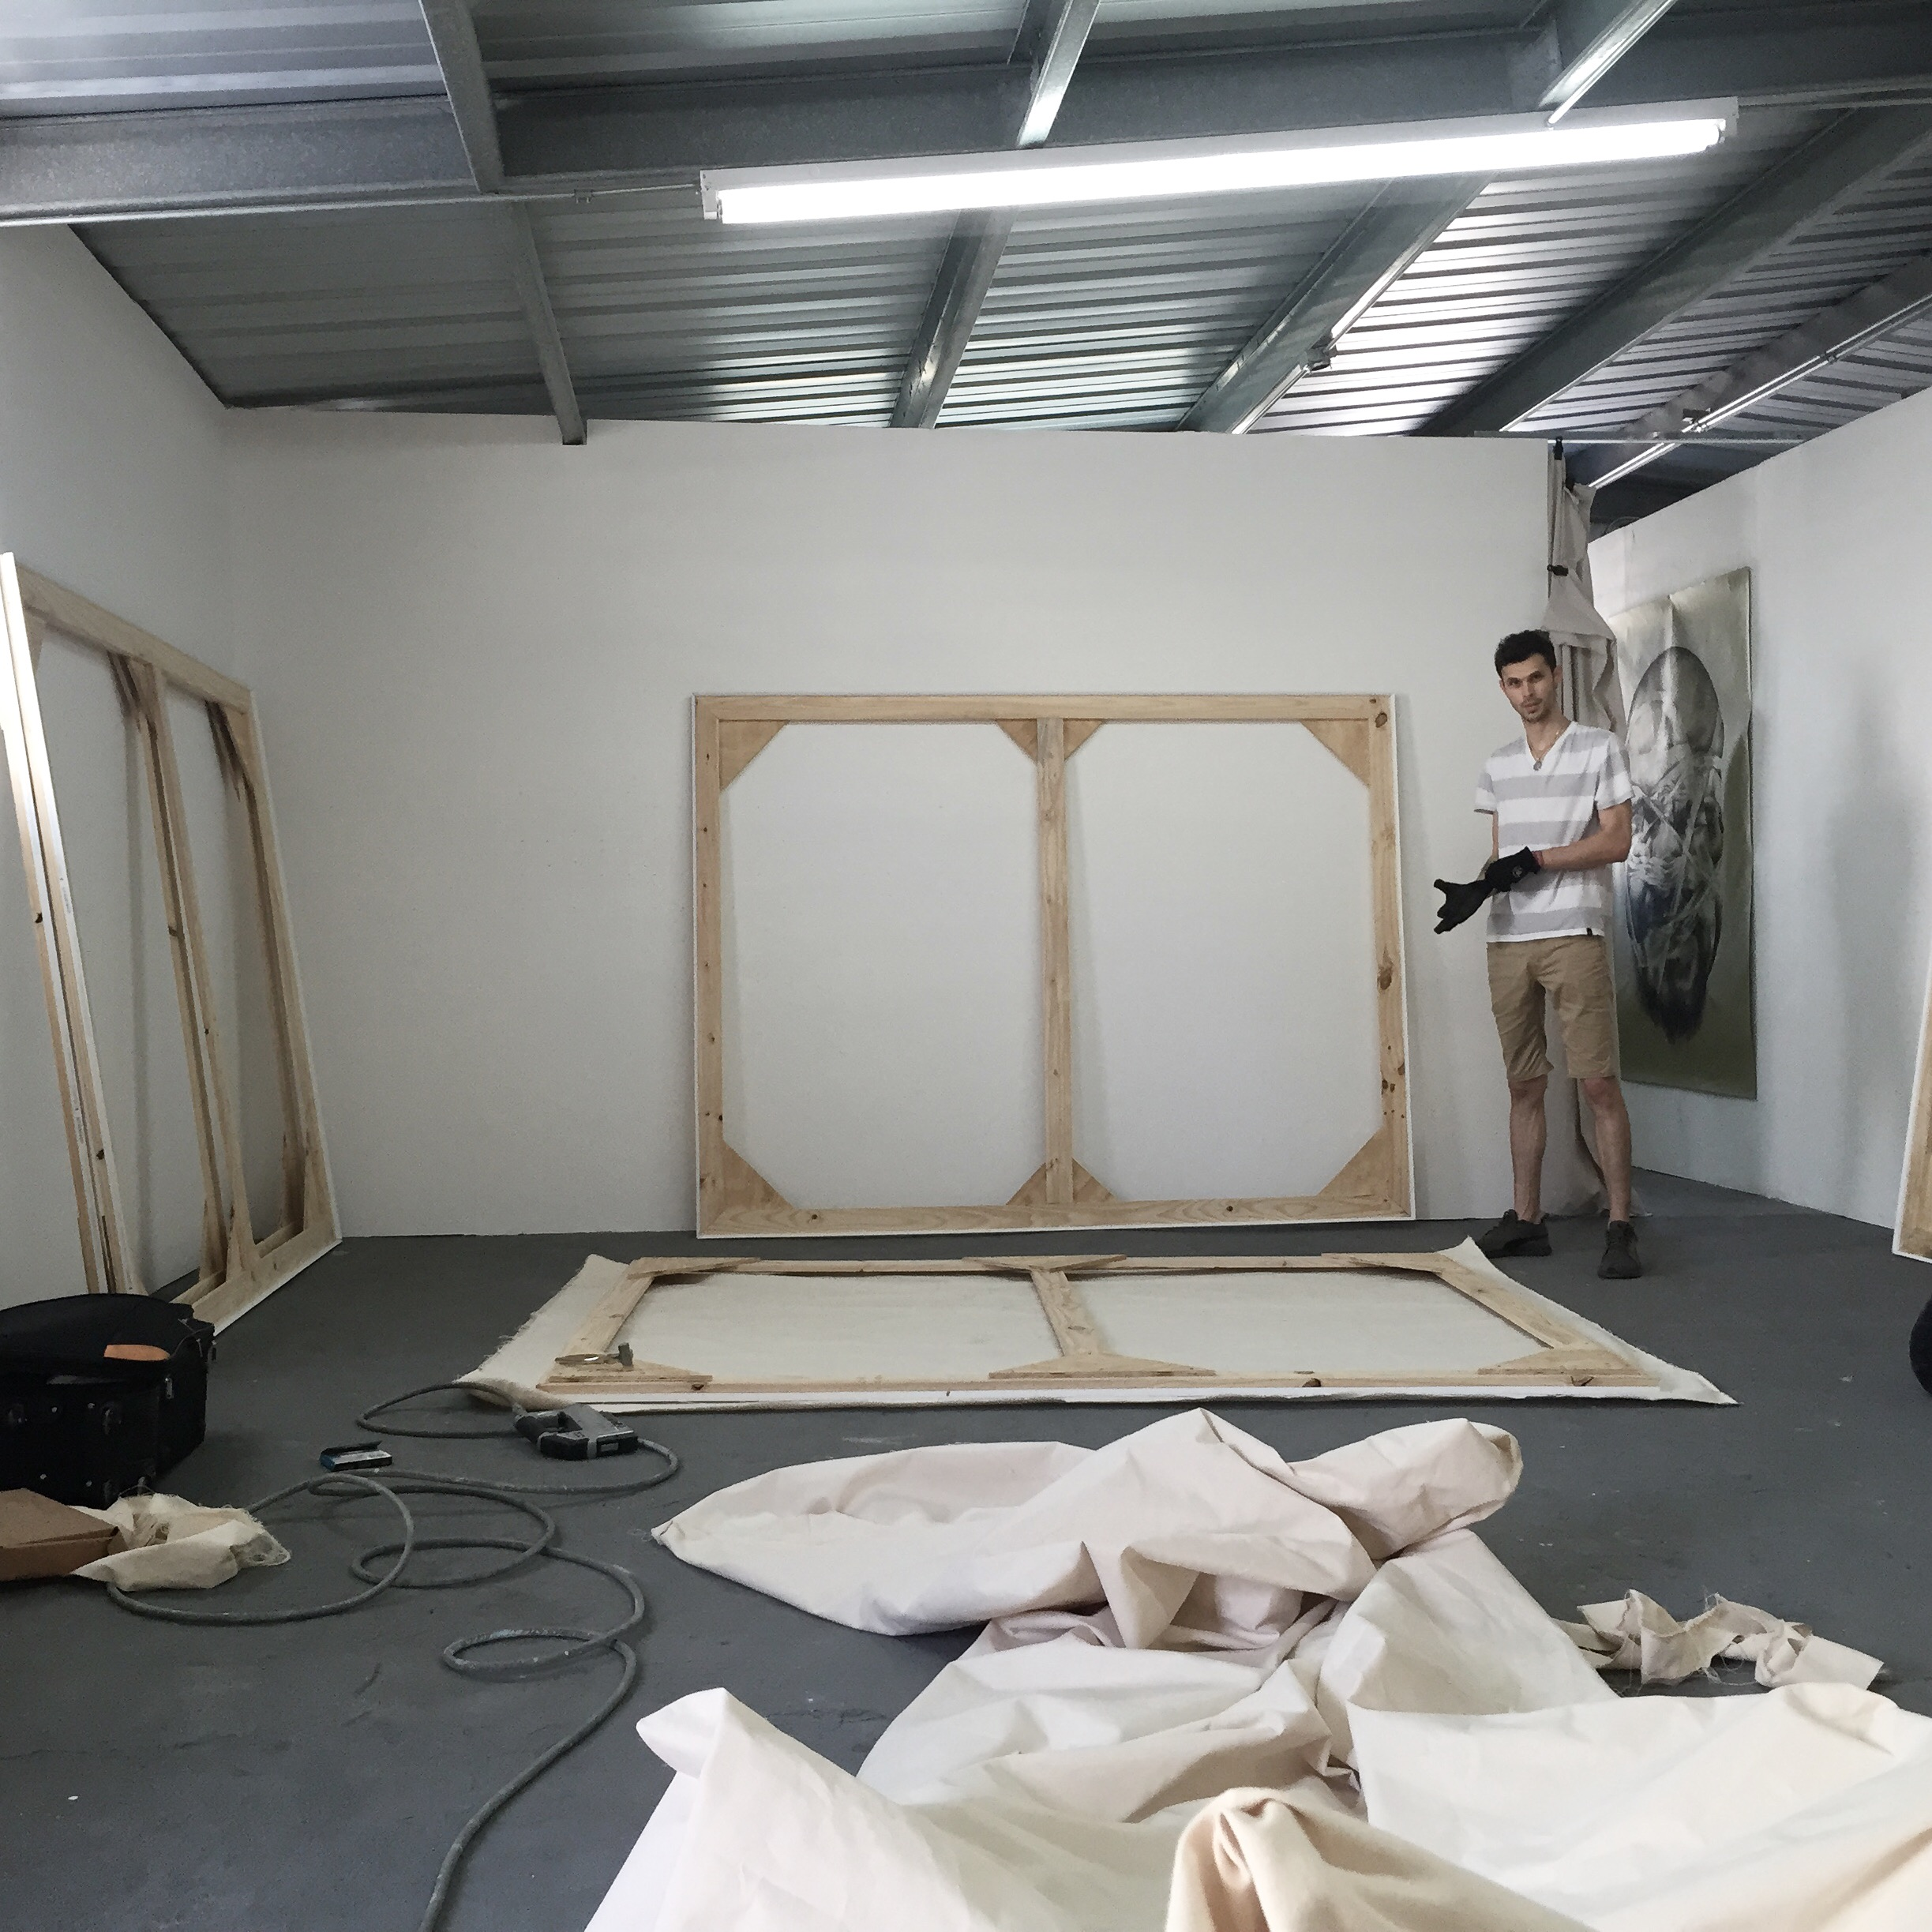 Andre Pagano in his preparation of Dark Matter show at  La productora August 2015.